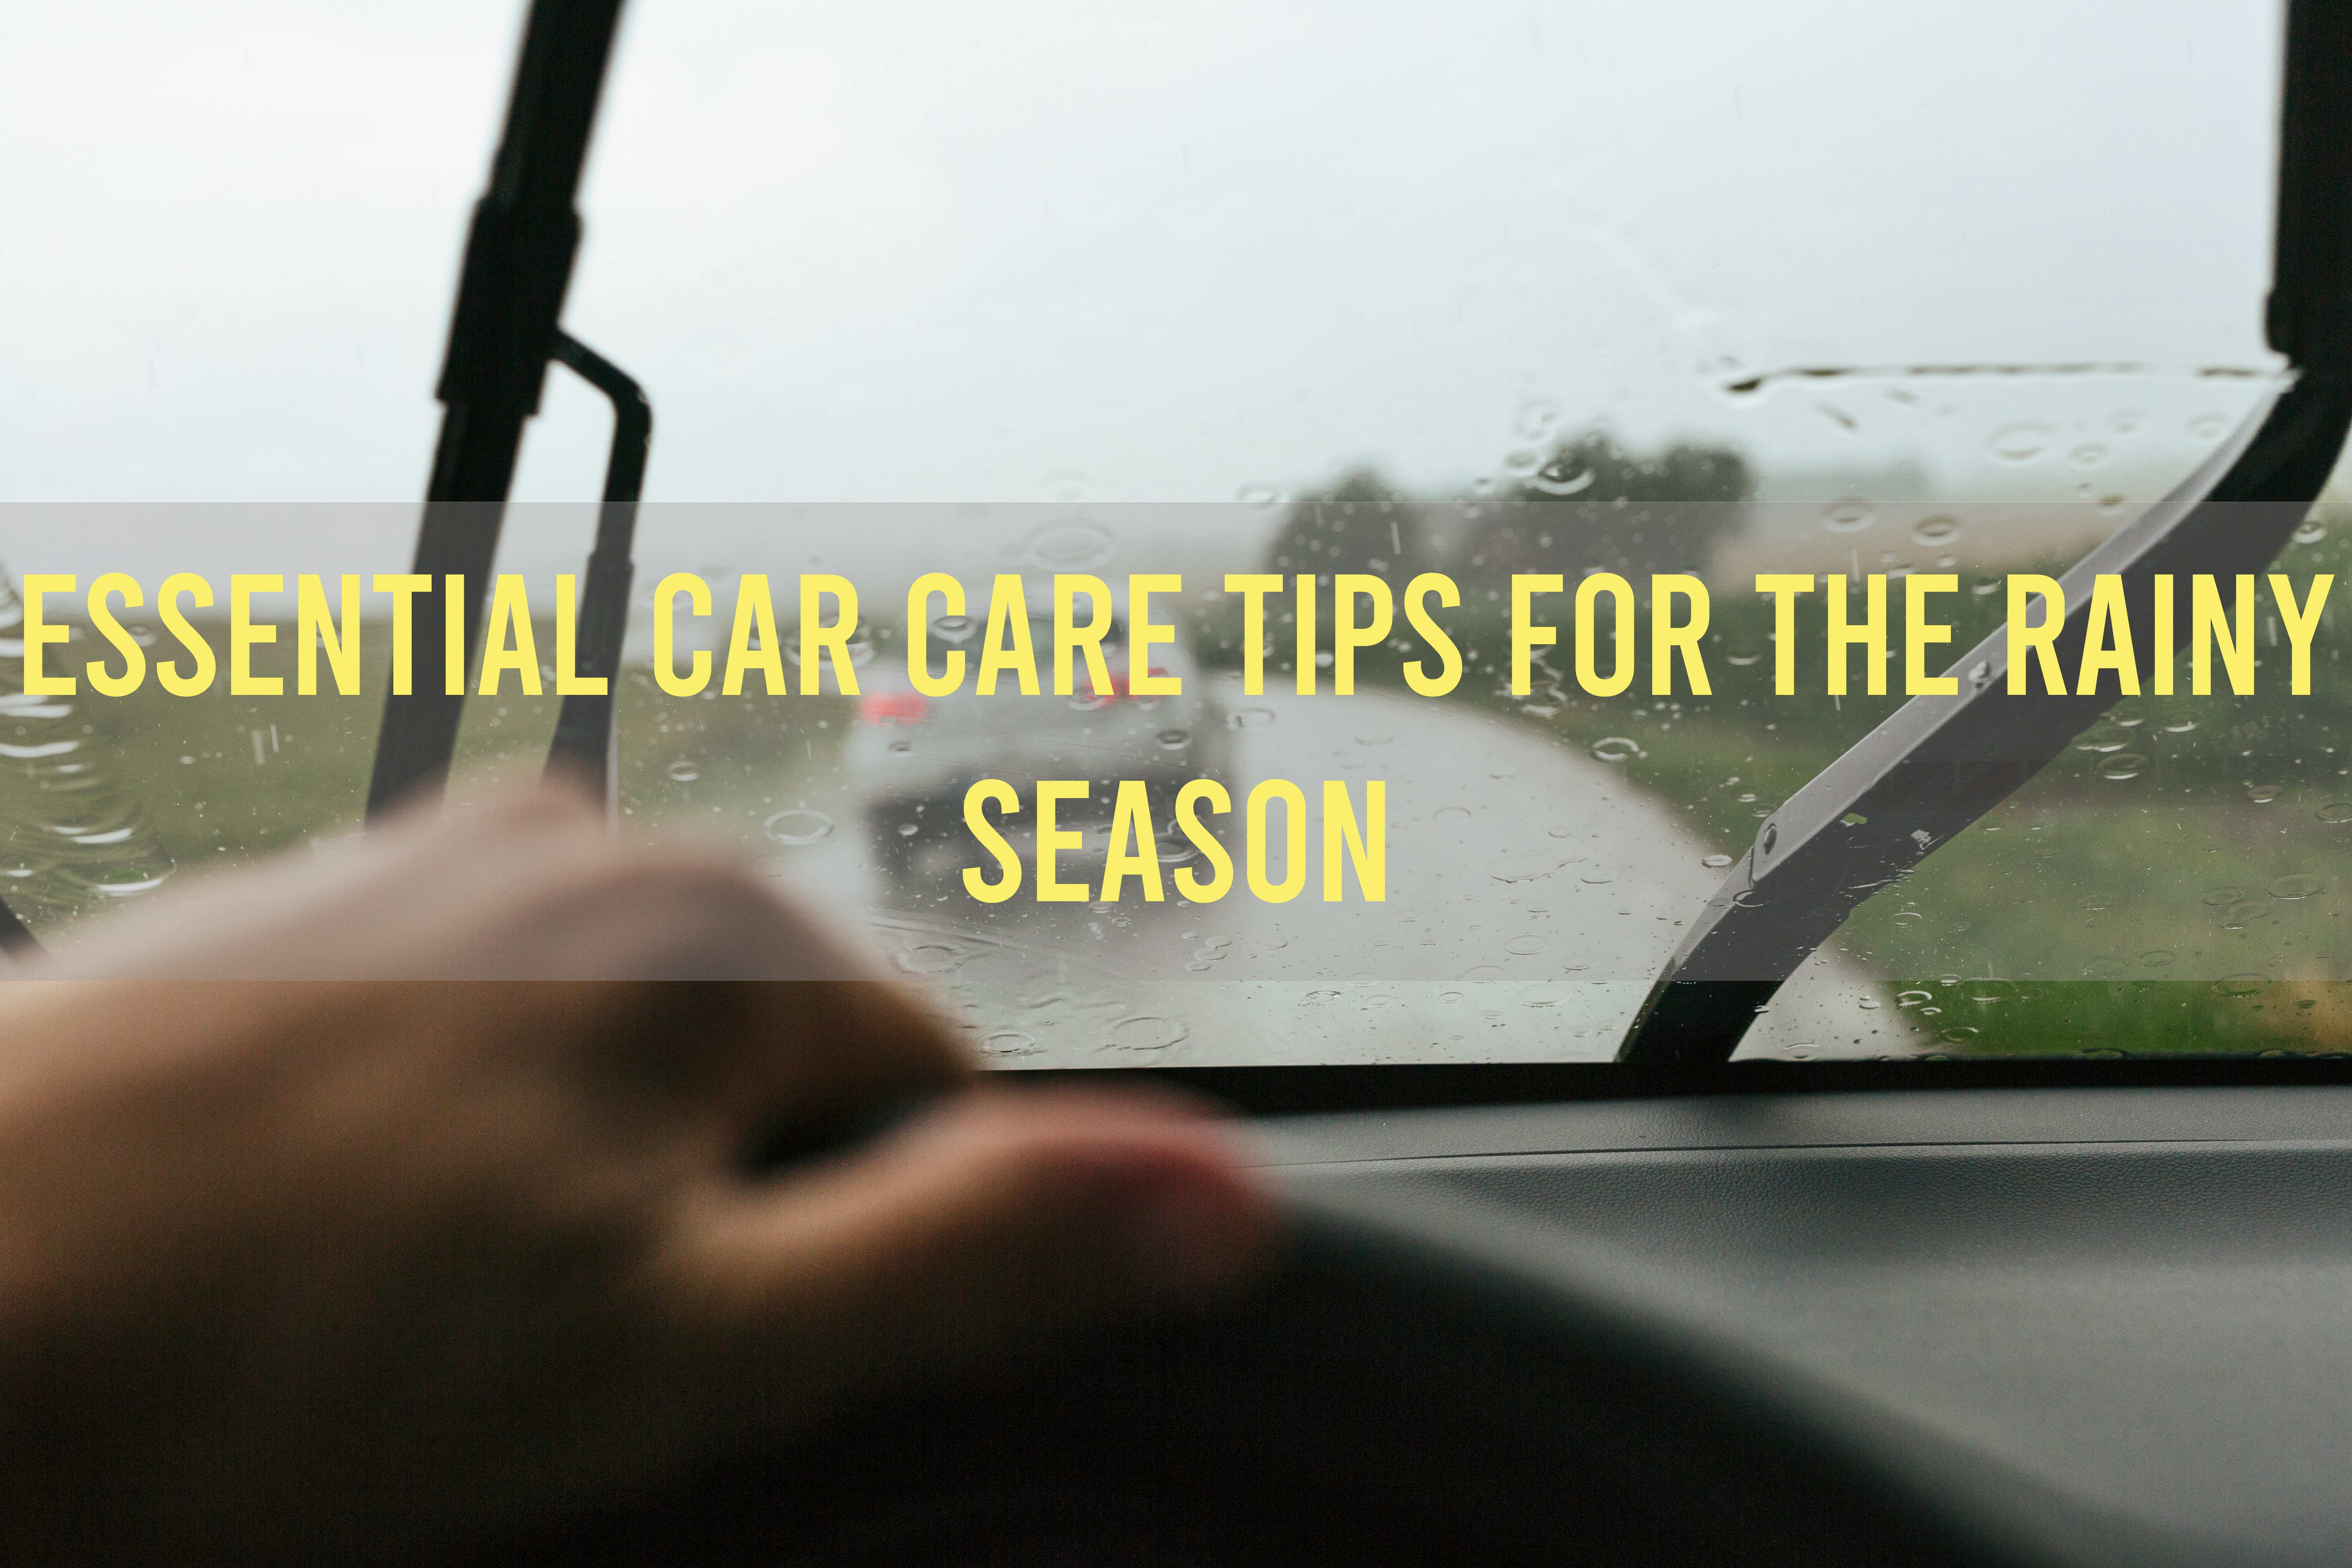 essential-car-care-tips-for-rainy-day-featured-image